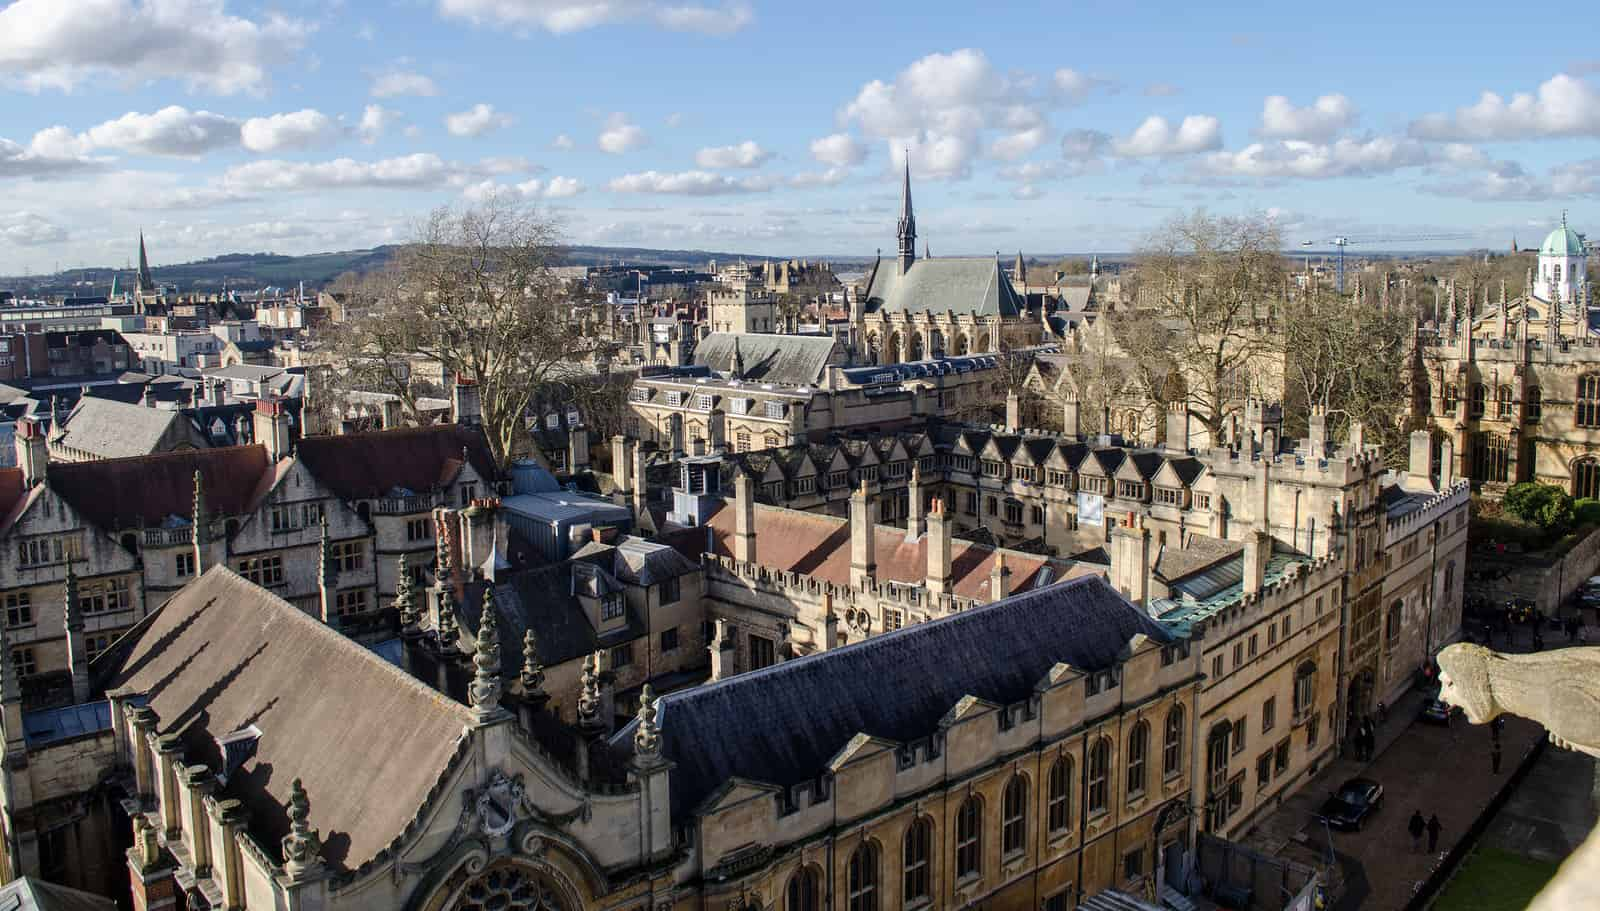 Houses in Oxford - UK Property Cash Buyers